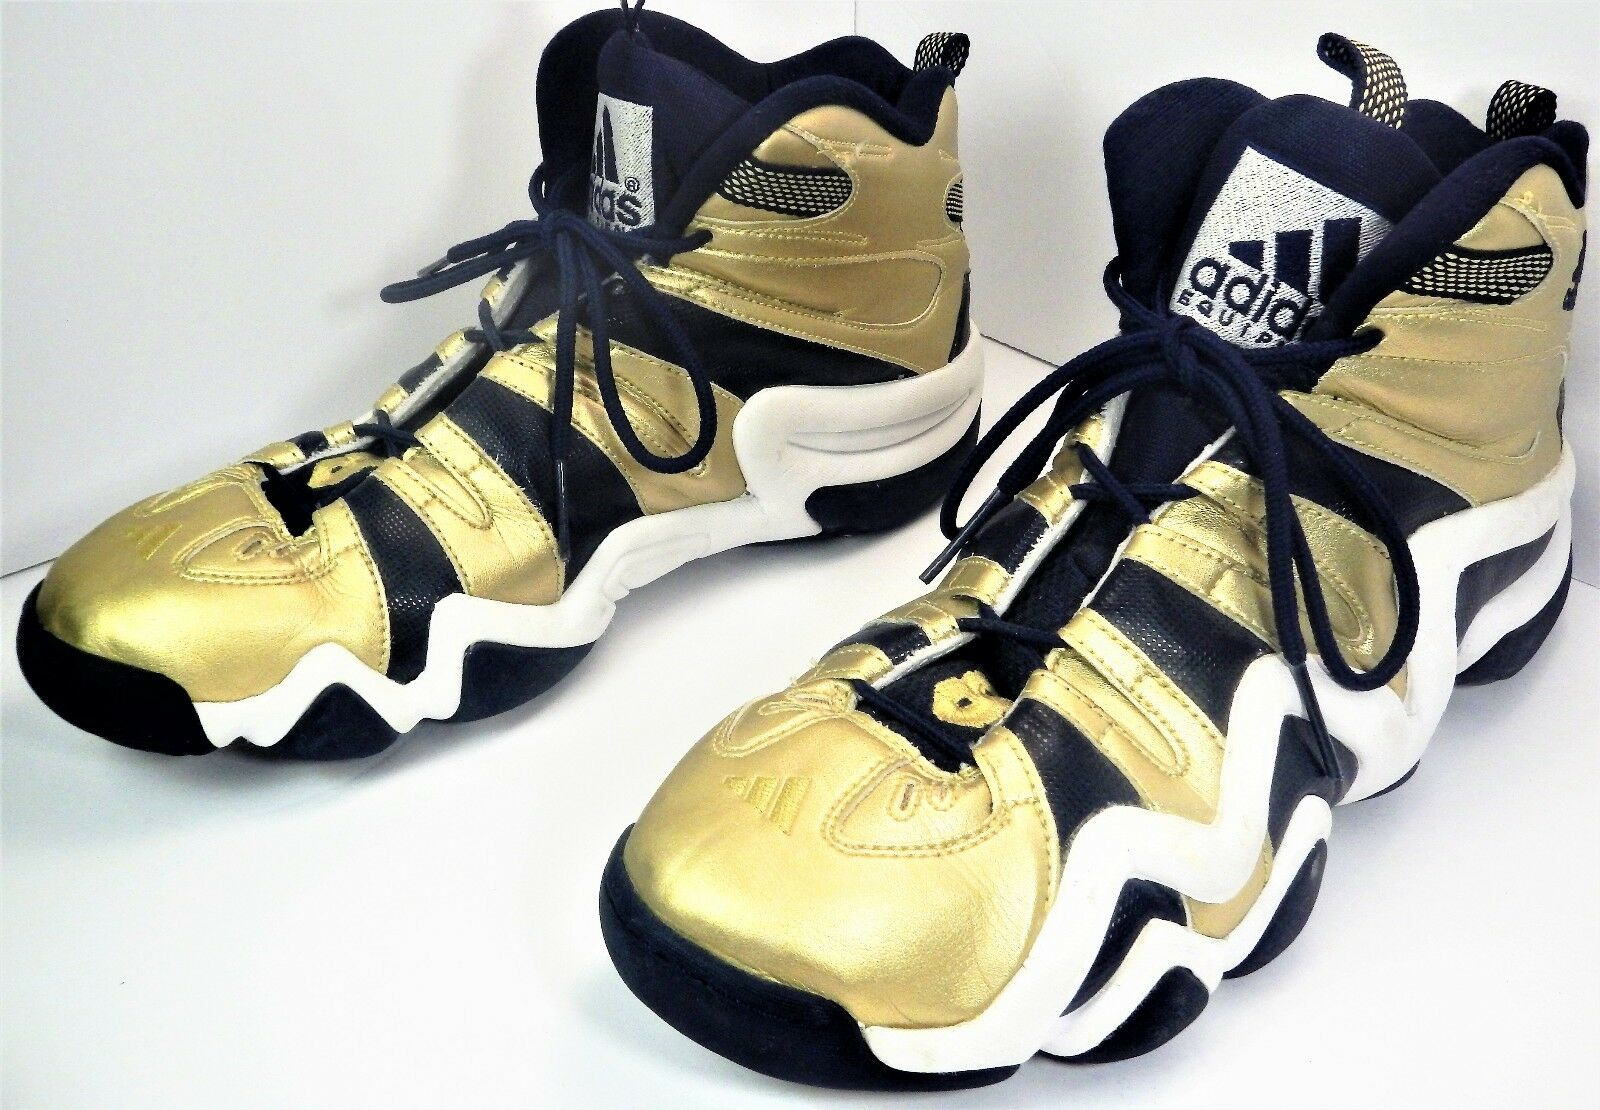 2011 ADIDAS Crazy 8 NOTRE DAME Navy Gold Limited G21469 US 15 /3